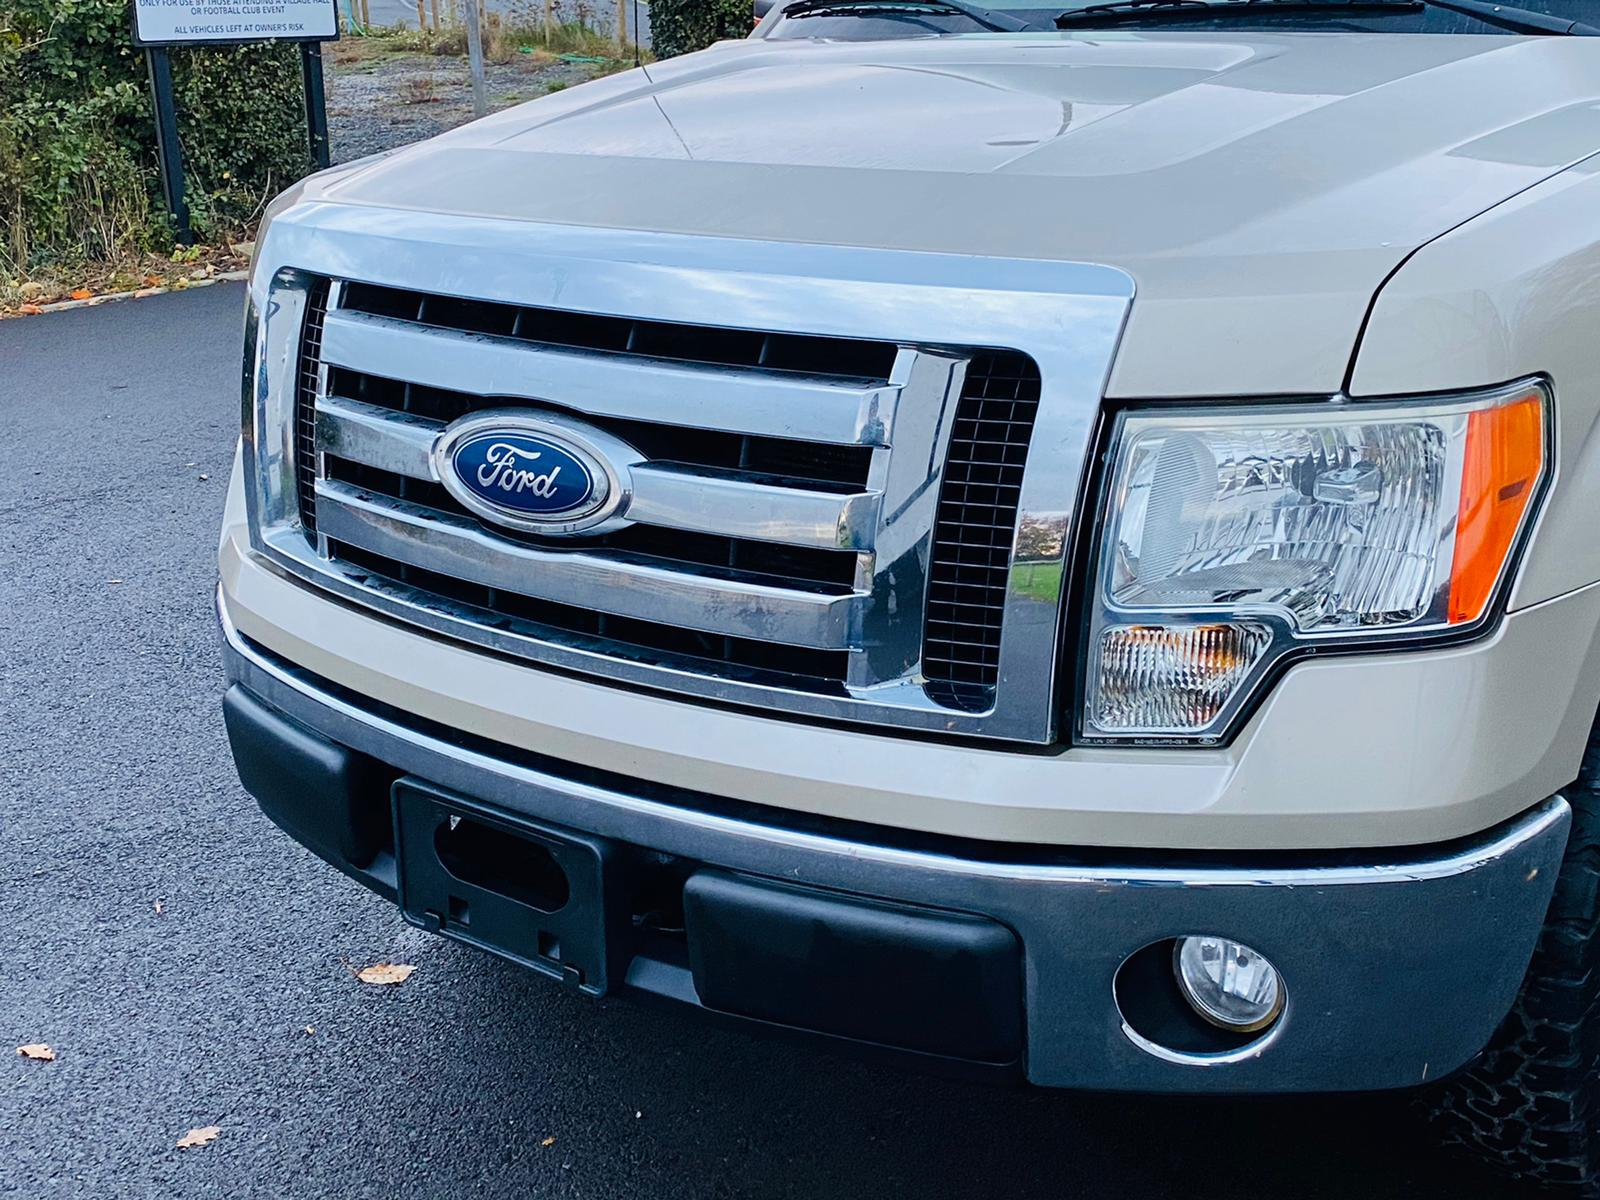 (RESERVE MET) Ford F-150 XLT 4.6L V8 Supercab - 2010 Year - 6 Seats - Fresh Imports - Image 9 of 39